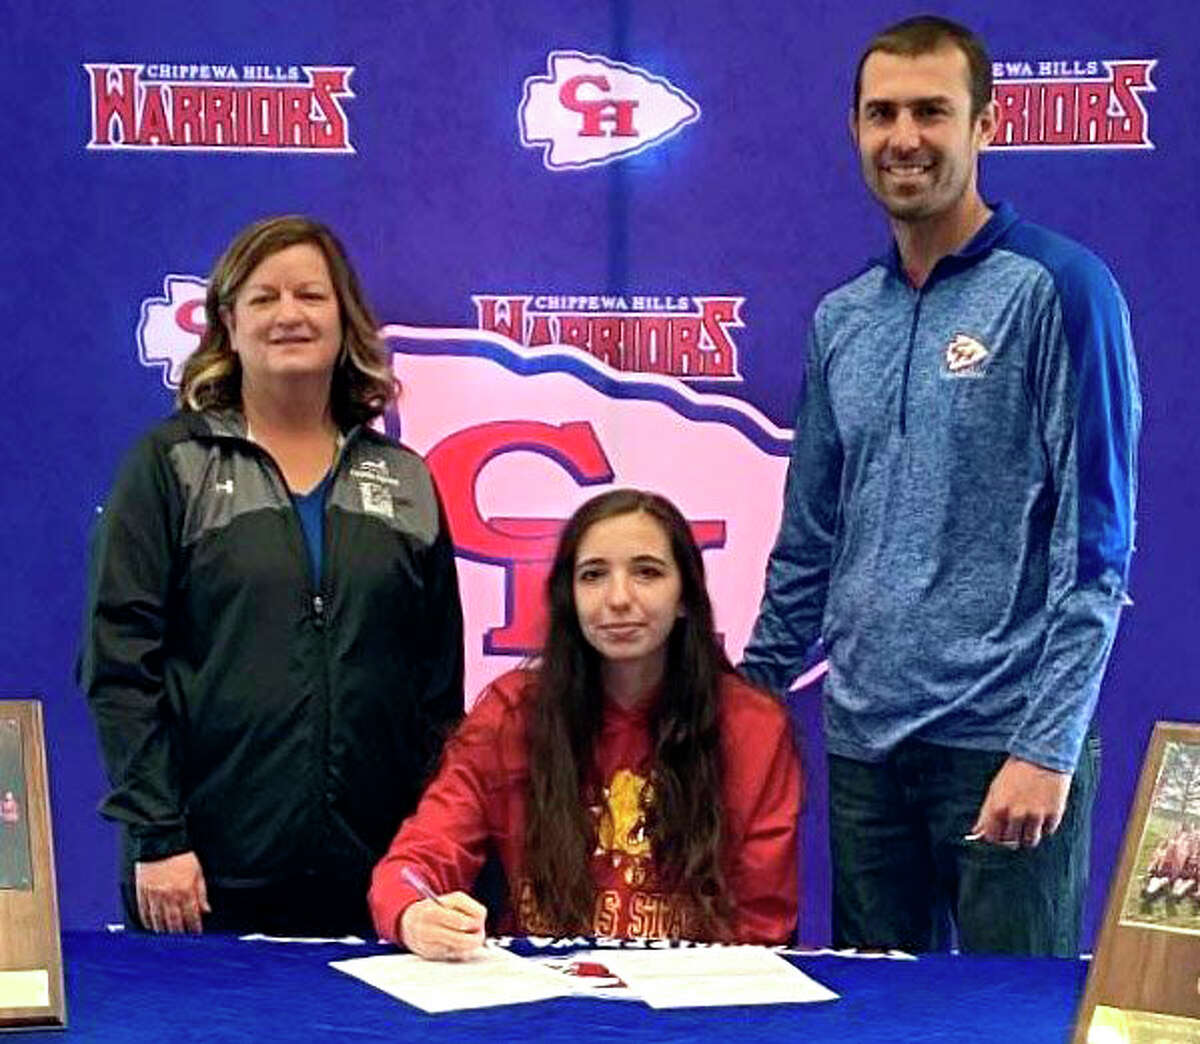 Chippewa Hills senior Emily Fredrick recently signed a letter of intent to join Ferris State's track and field program. She is pictured at her signing with Chippewa Hills assistant coach Sally Schafer (left) and head coach Zach Hatfield.